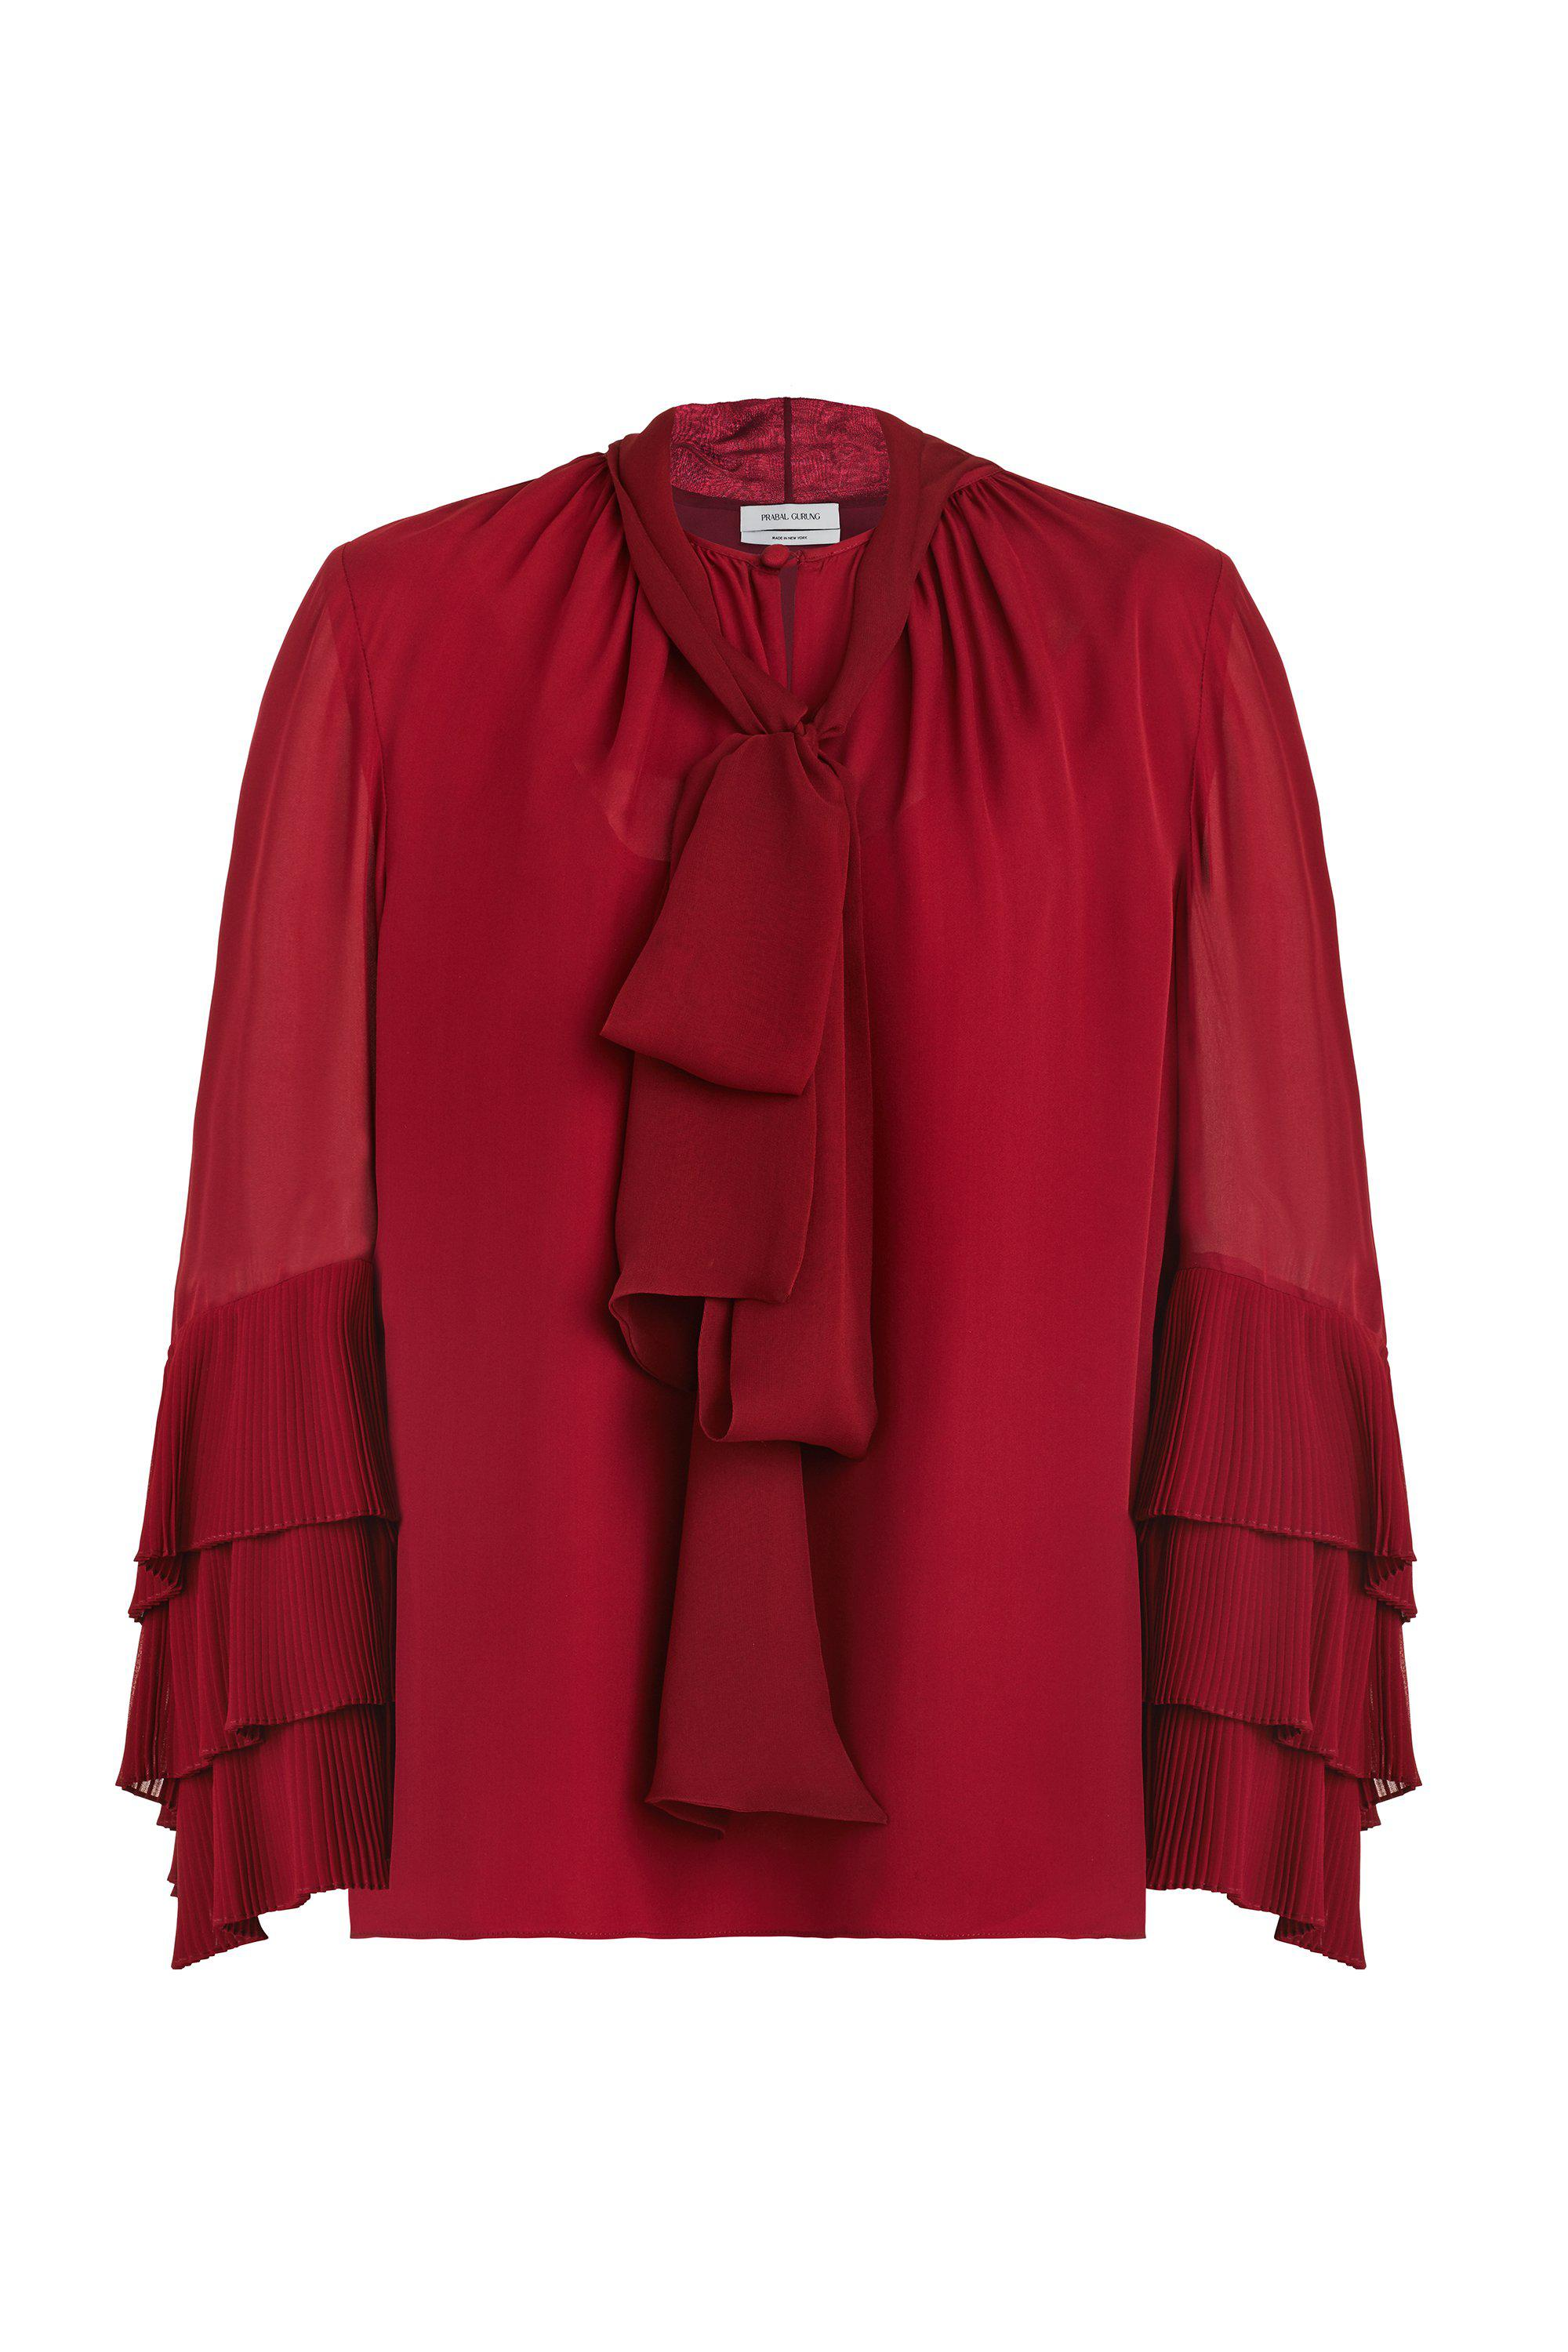 1c4b61f8e9ca77 Lyst - Prabal Gurung Tie Neck Blouse in Red